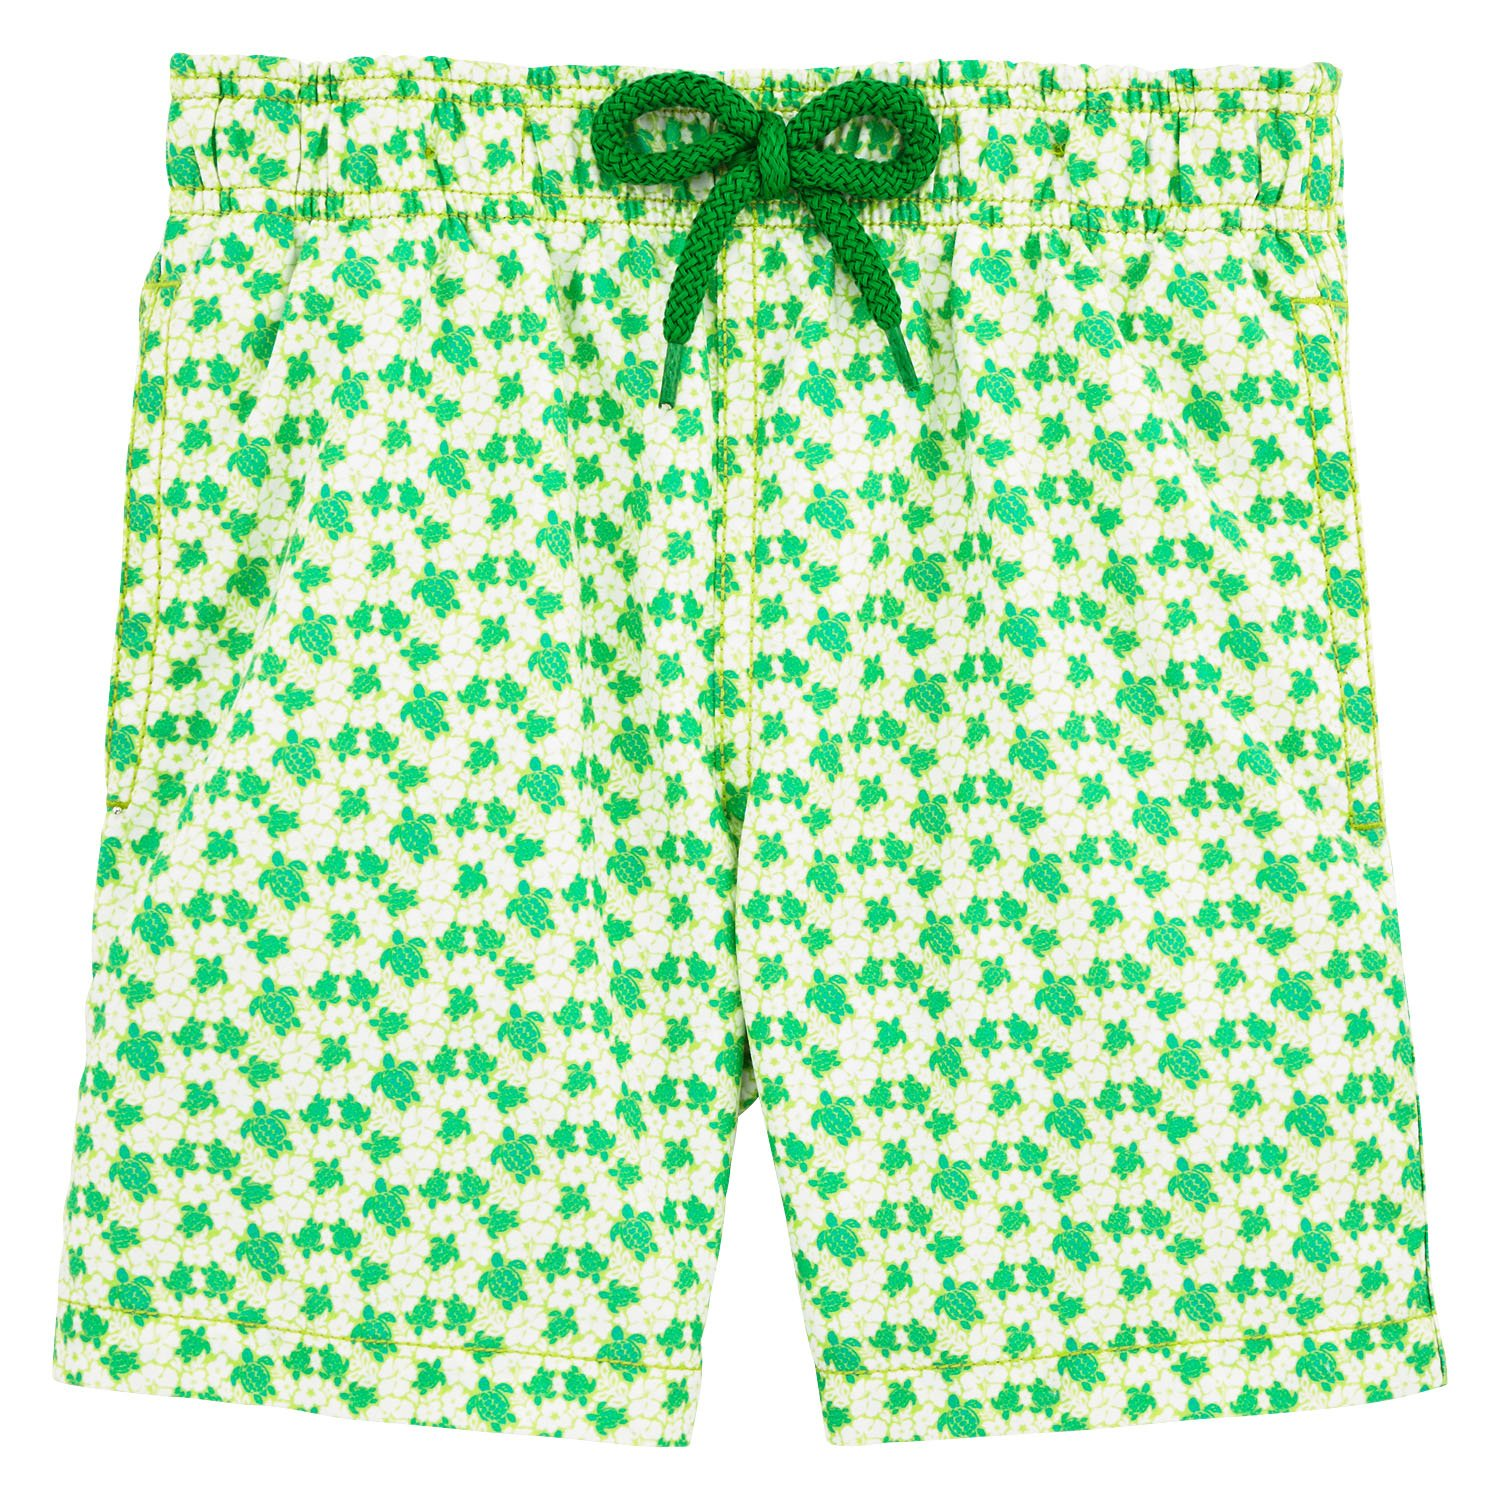 Vilebrequin Micro Turtles Hawaï Swim Shorts - Boys - veronese green - 2Yrs